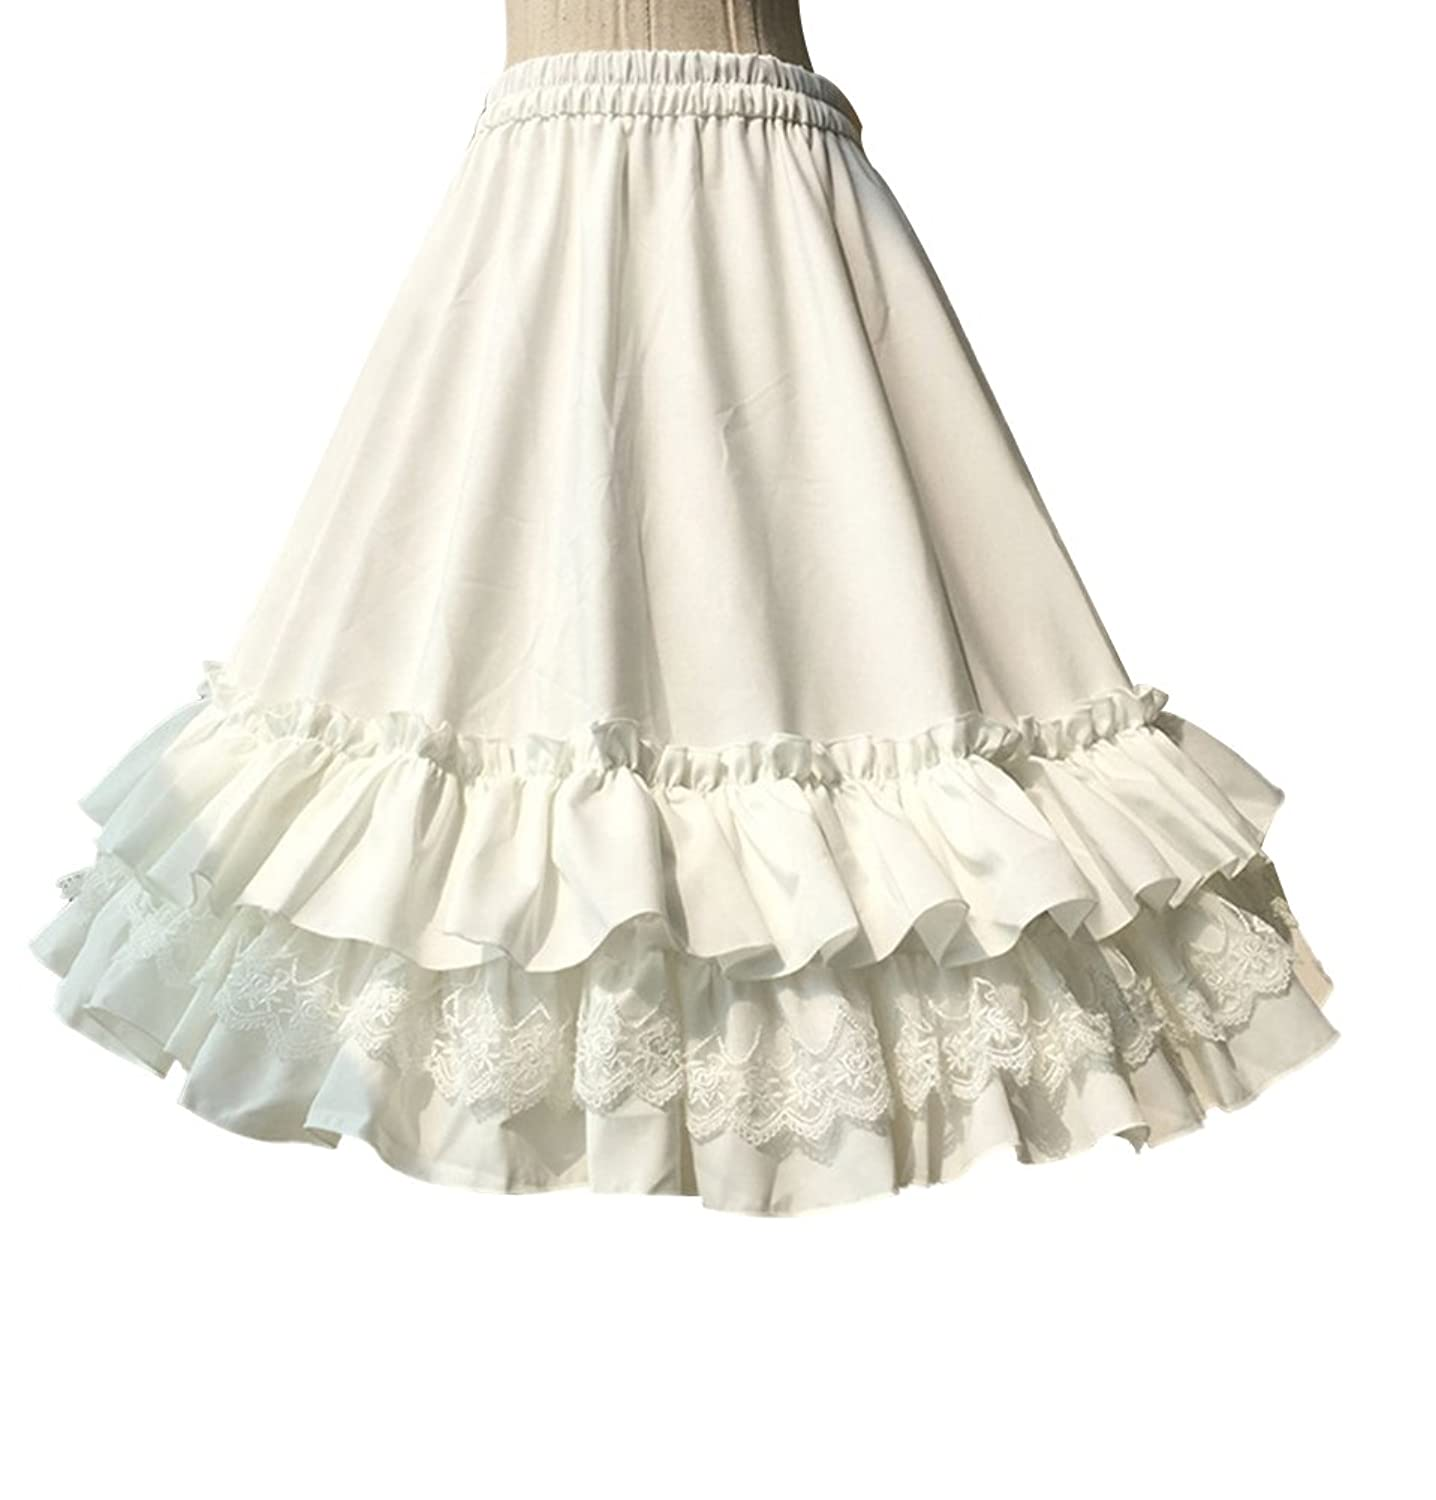 Crinoline Skirt | Crinoline Slips | Crinoline Petticoat 50s Cotton Petticoat  AT vintagedancer.com